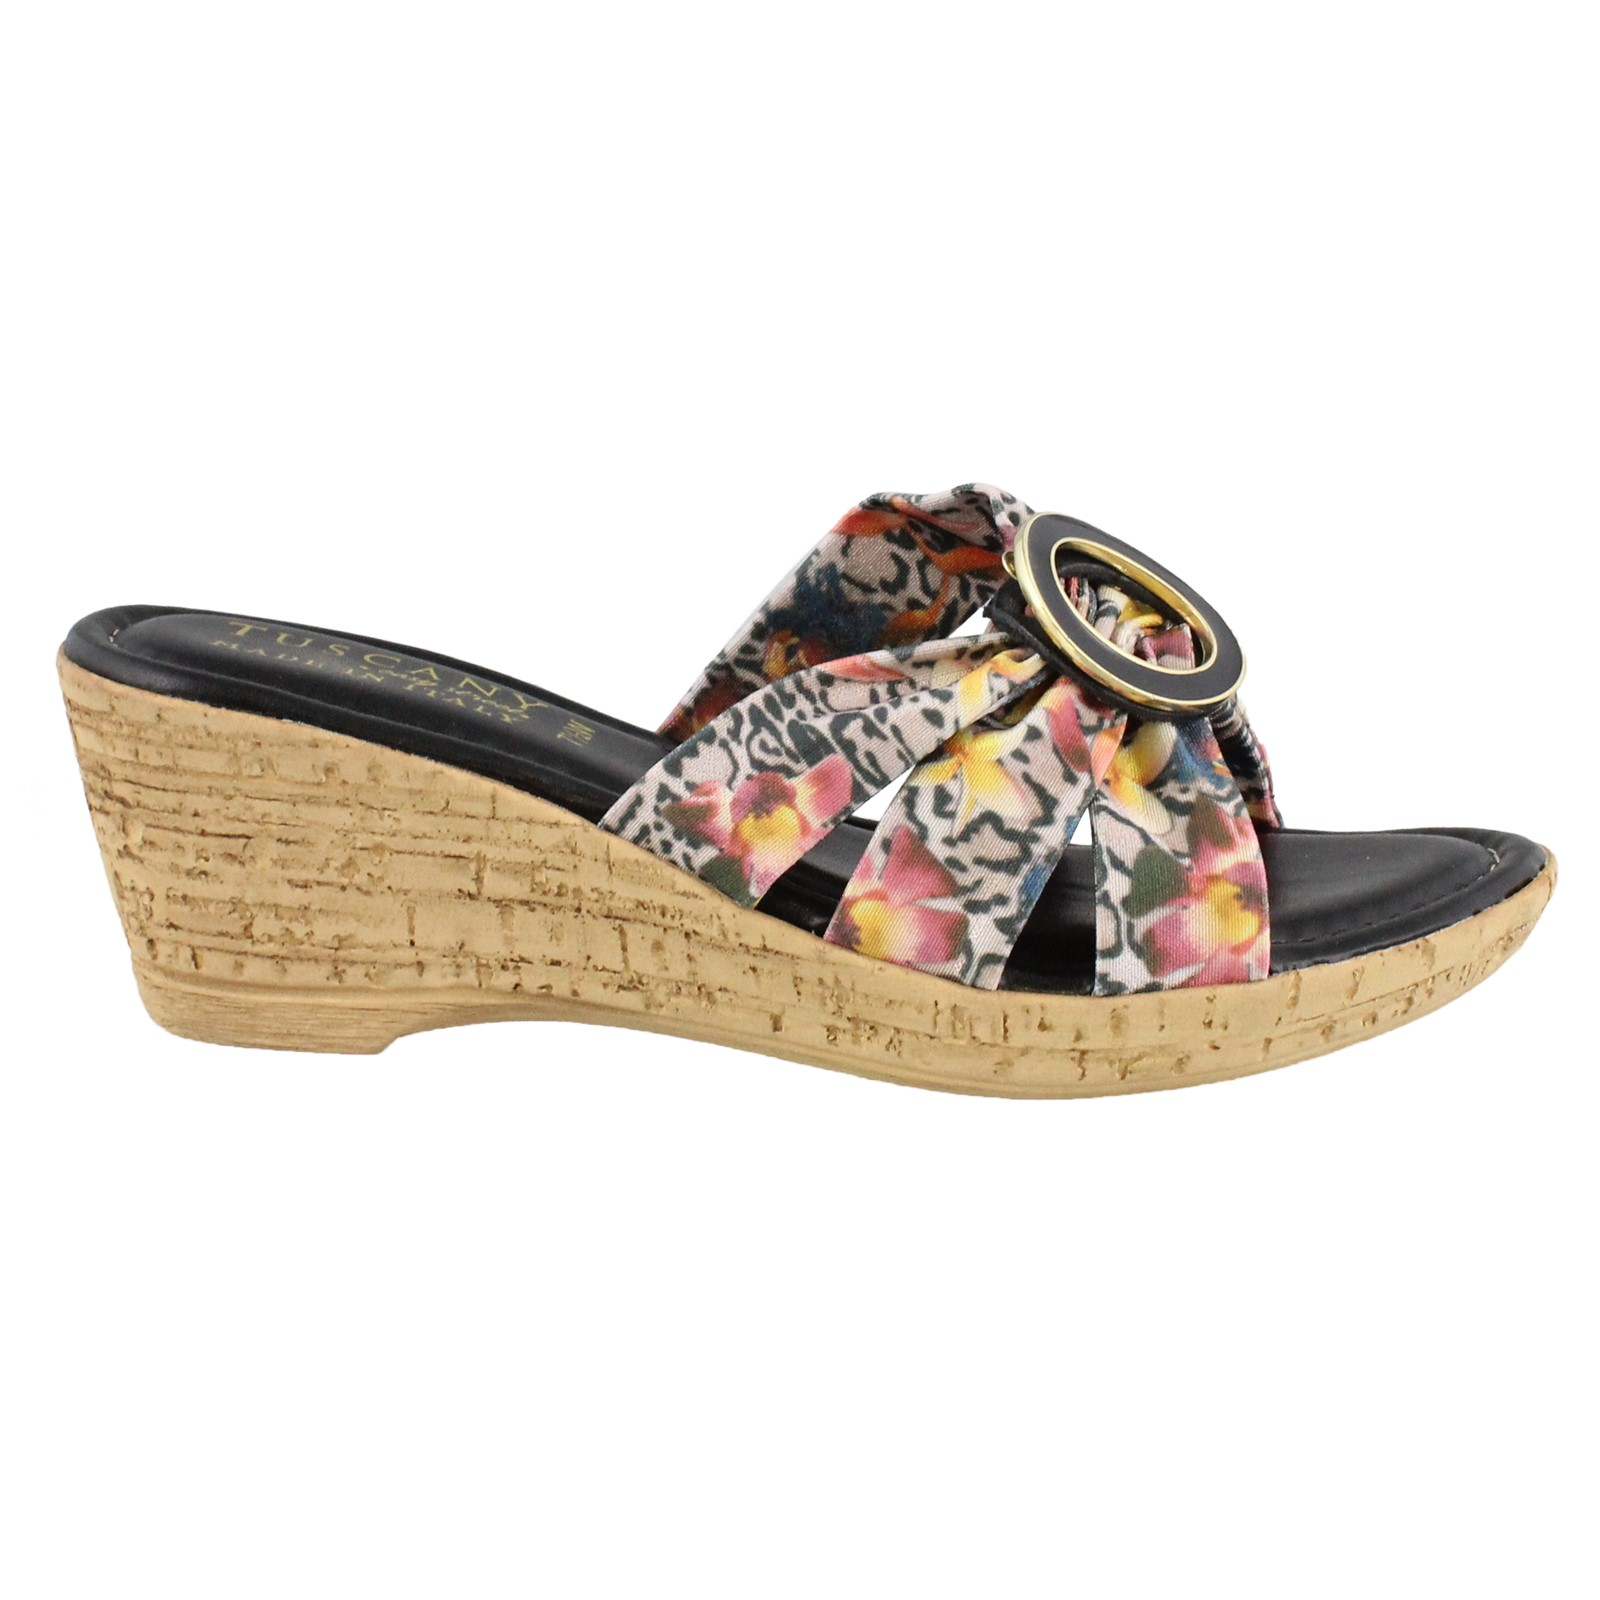 Women's Easy Street, Conca Wedge Sandals